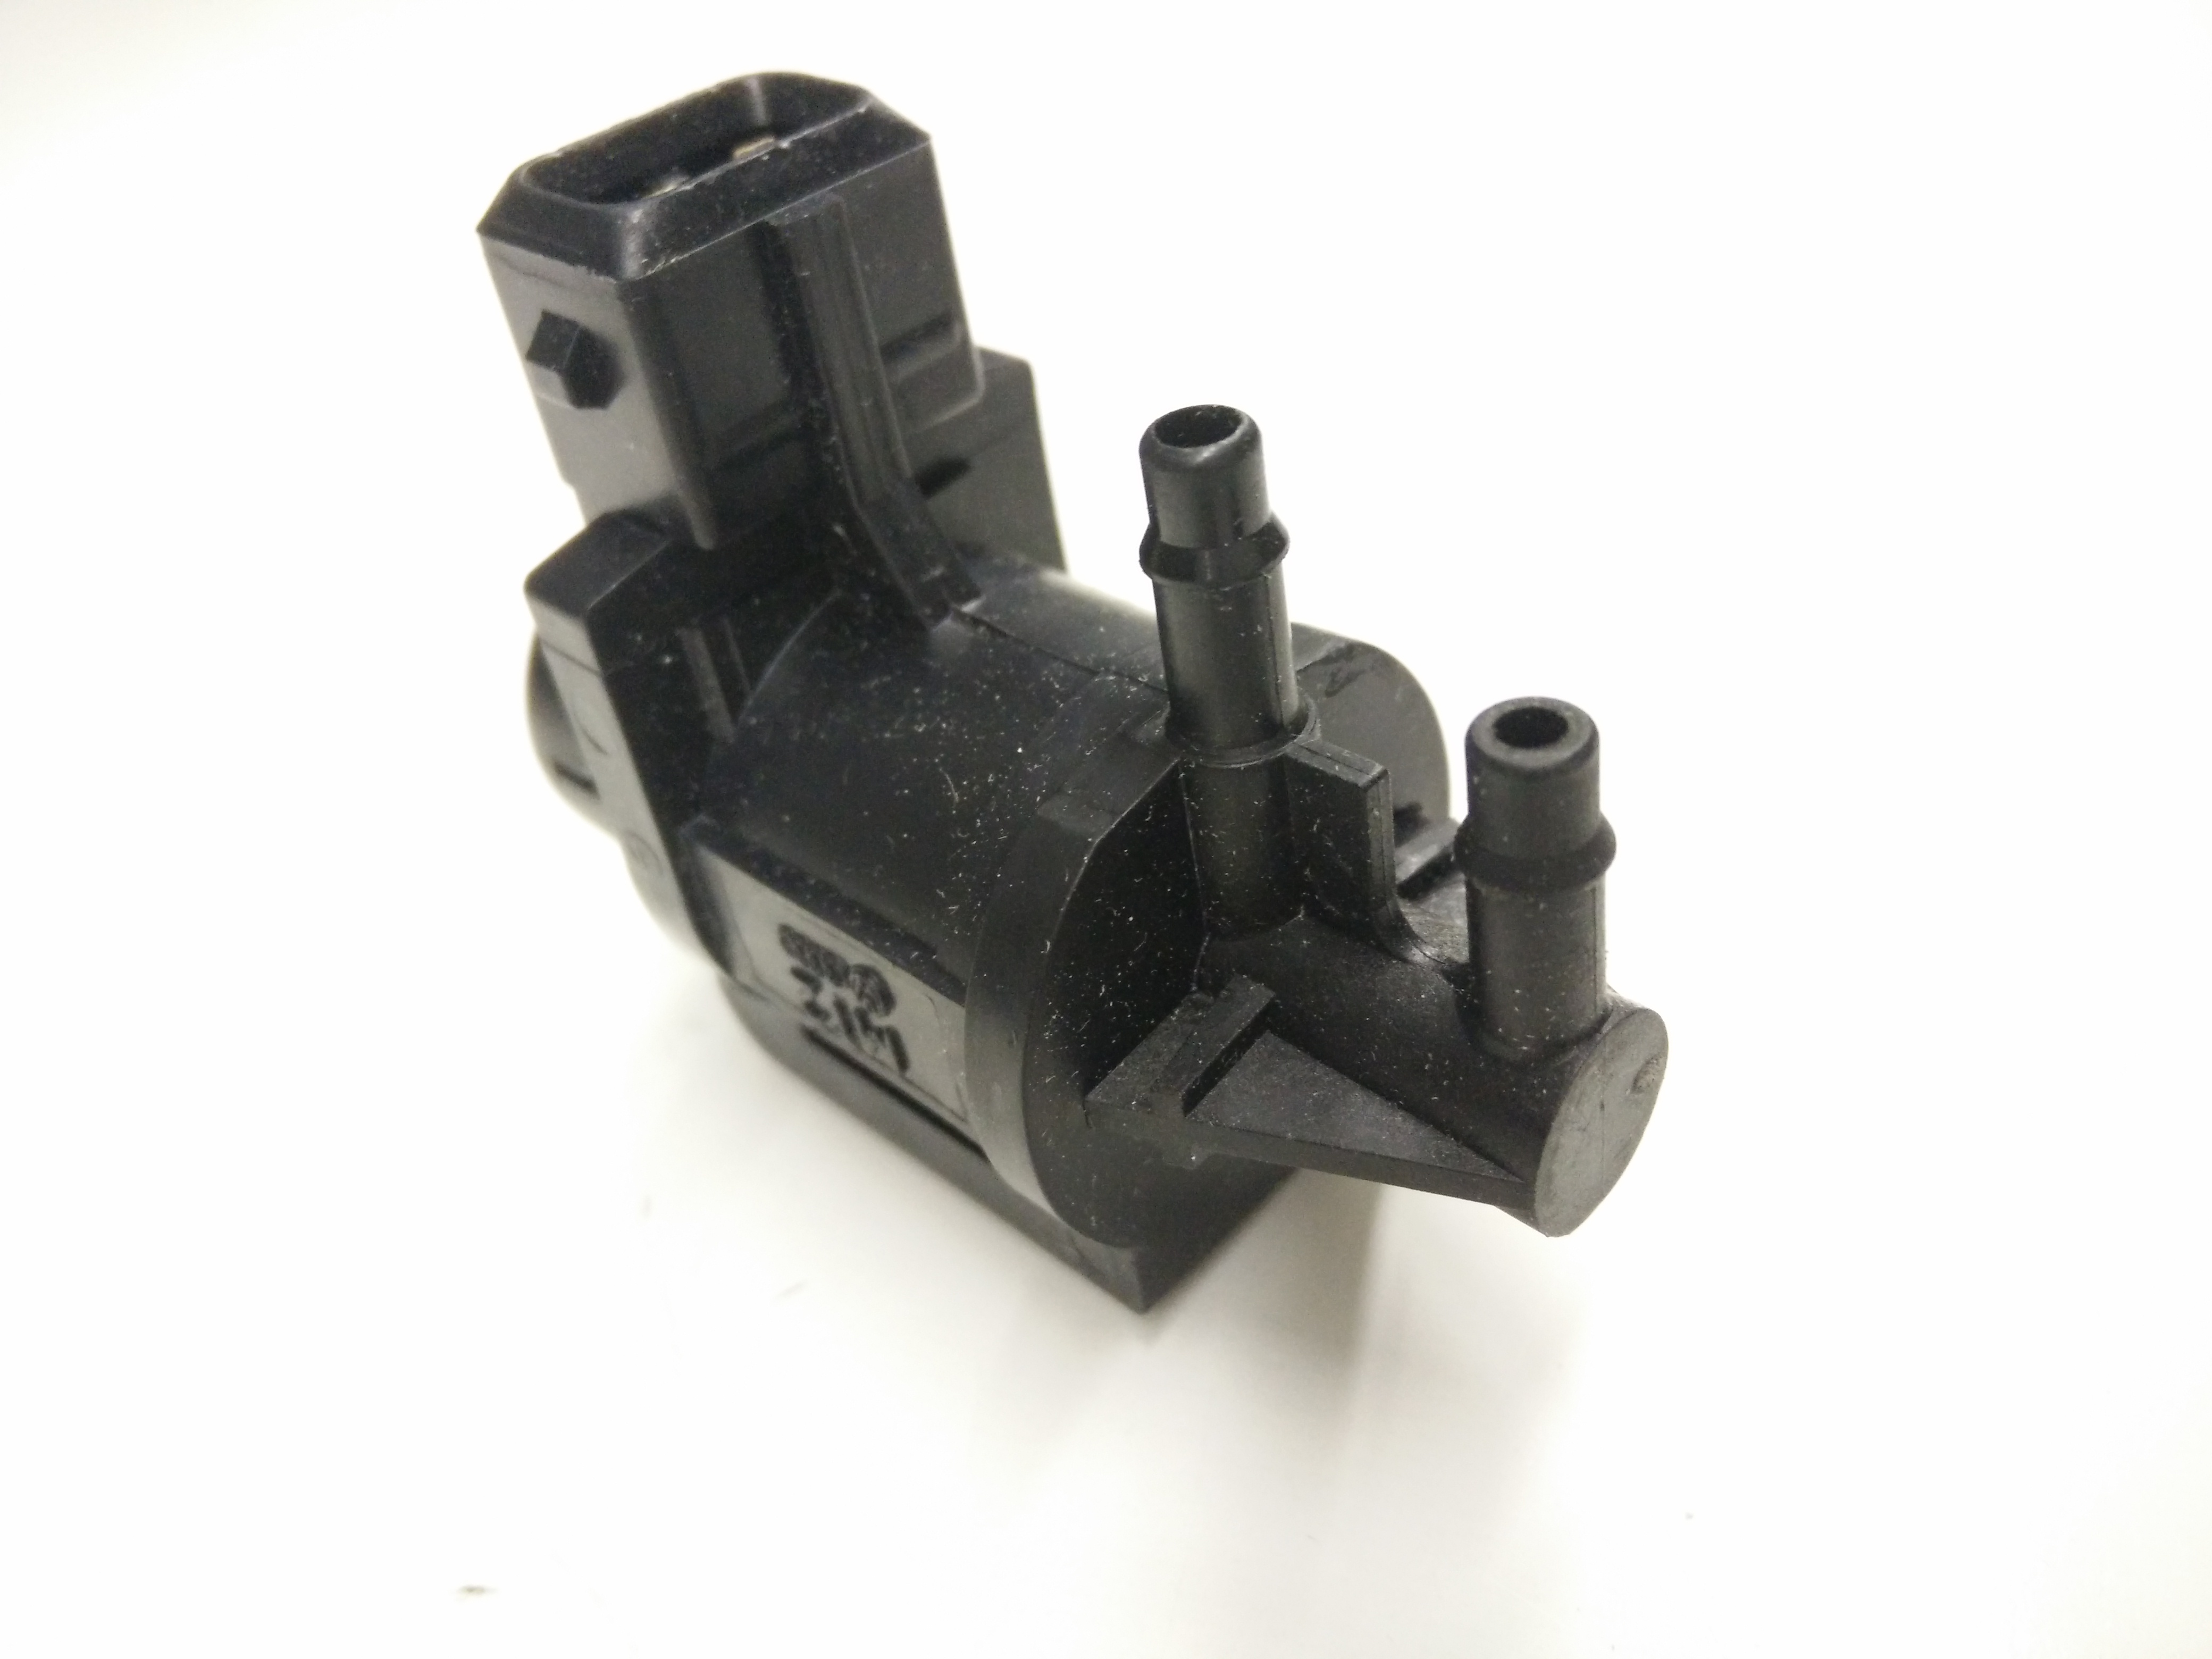 191906283A - Secondary Air Injection Solenoid. EMISSION ...